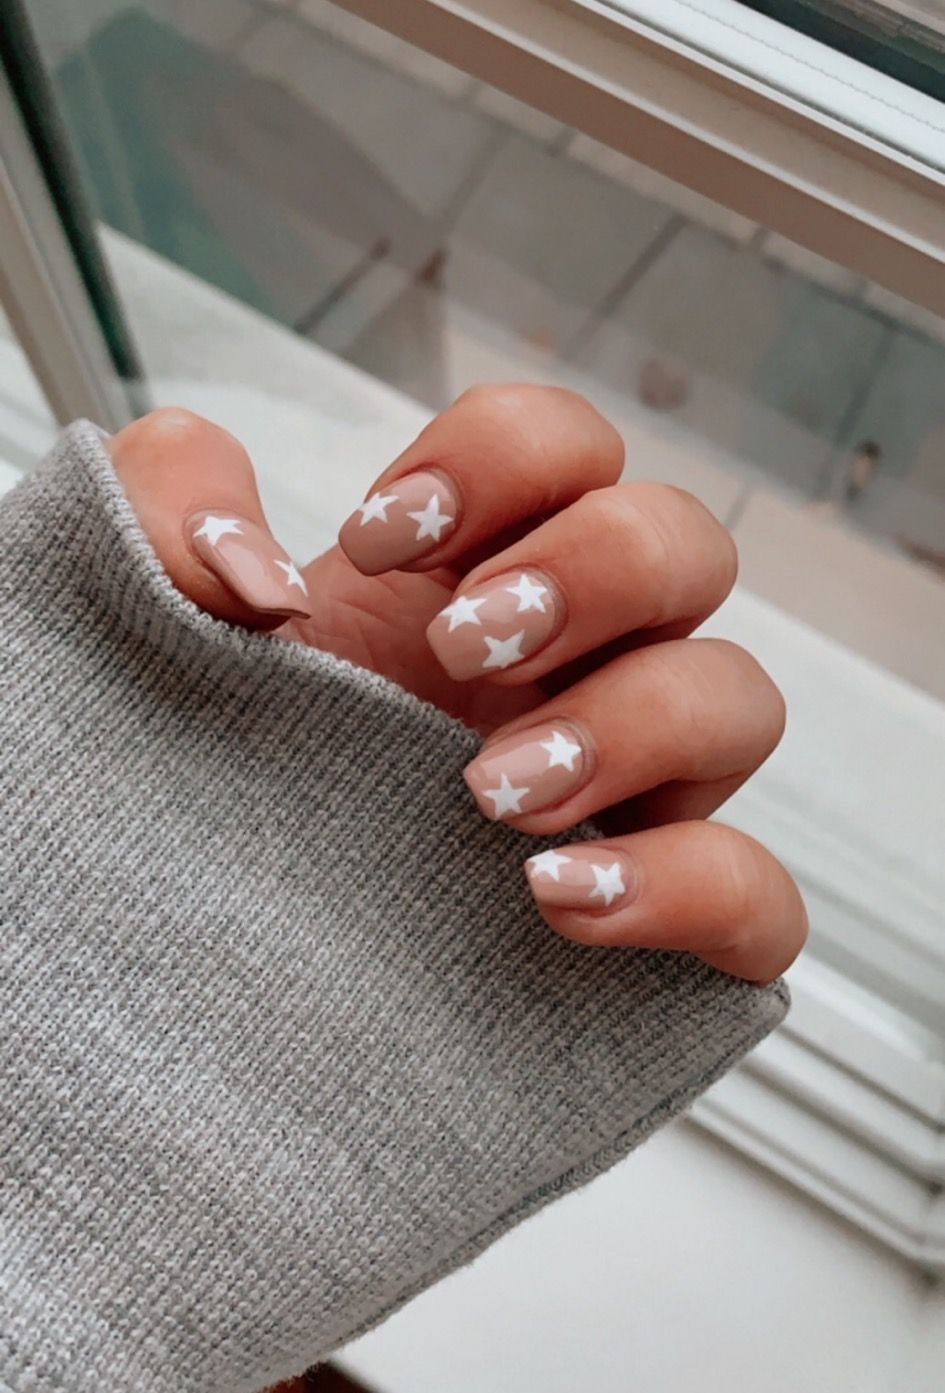 Star Nails Insta Carlygiotto Star Nail Designs Cute Acrylic Nails Holographic Nails